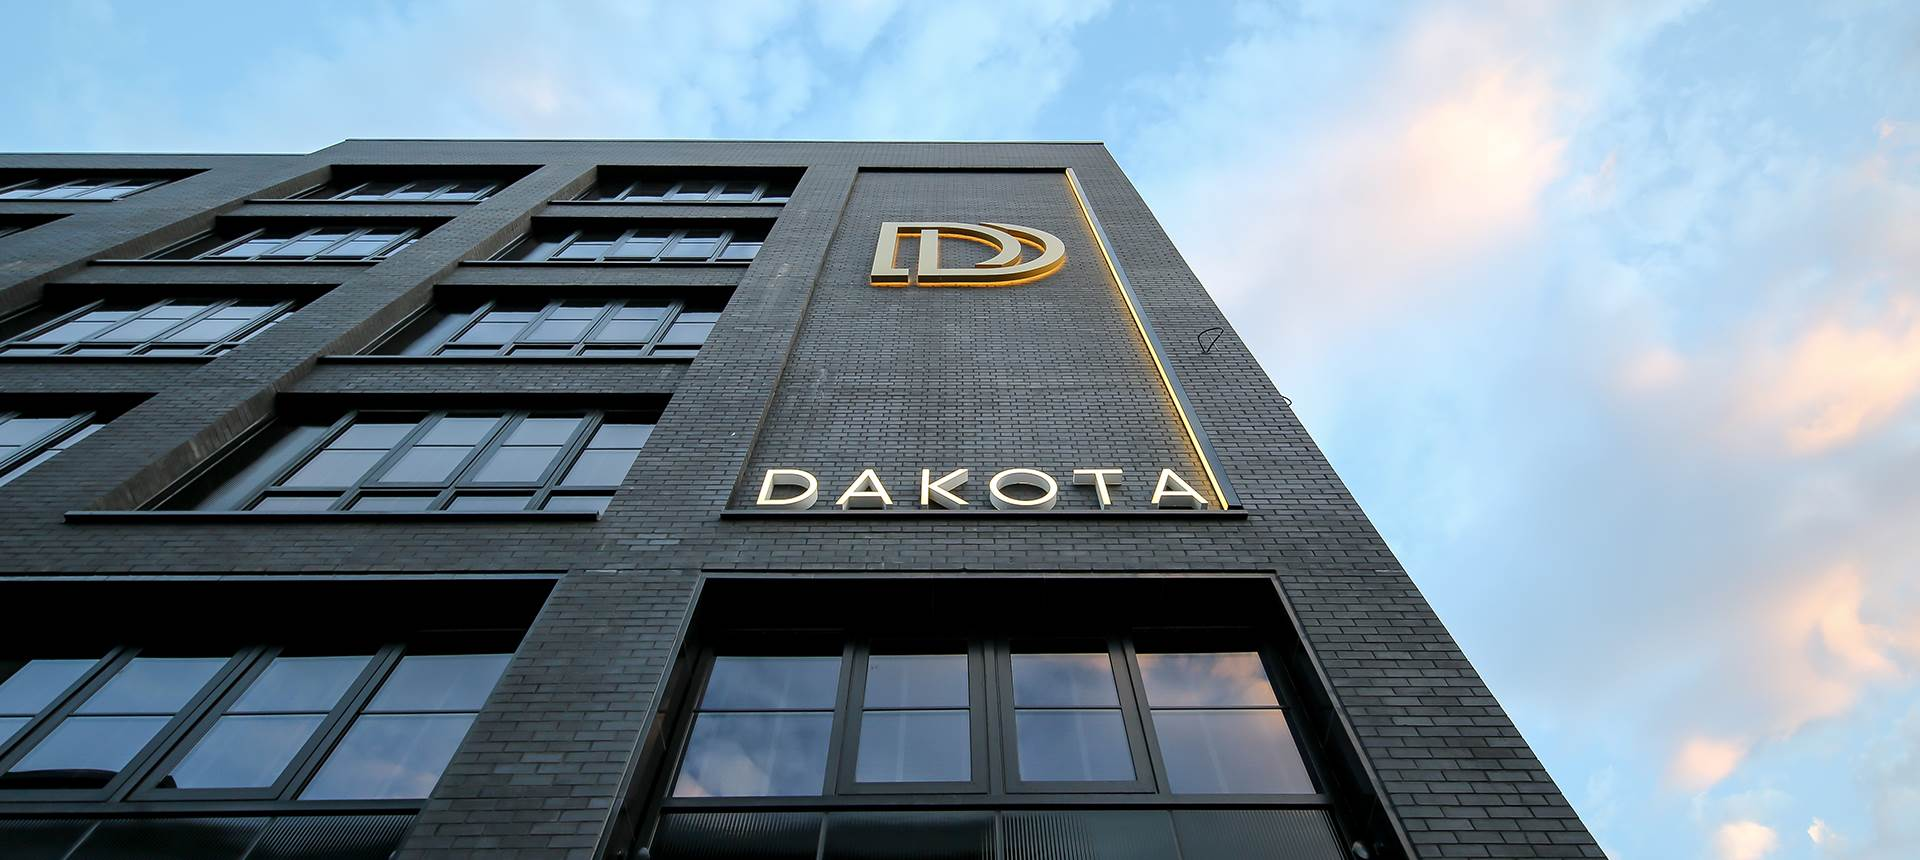 Dakota Glasgow Hotel Scotland Tours